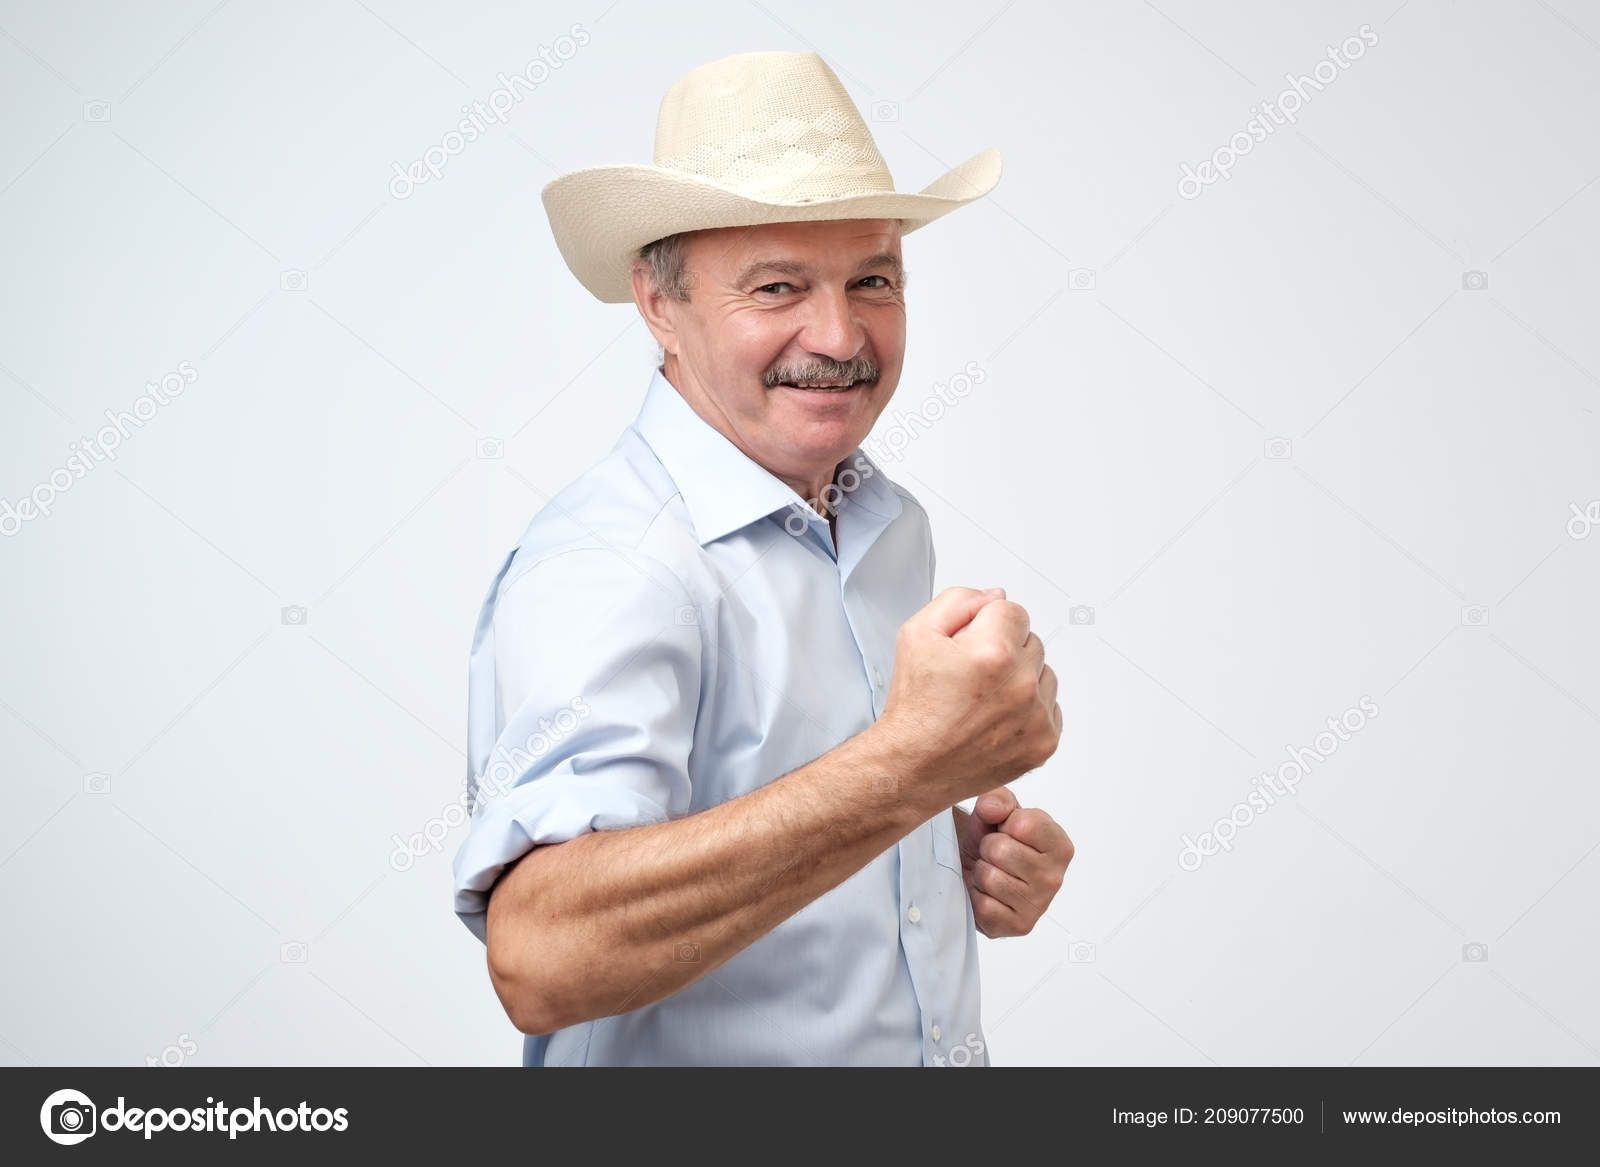 362e36a33cbe5 Portrait Handsome Successful Mature Man Wearing Cowboy Hat Celebrating His  — Stock Photo